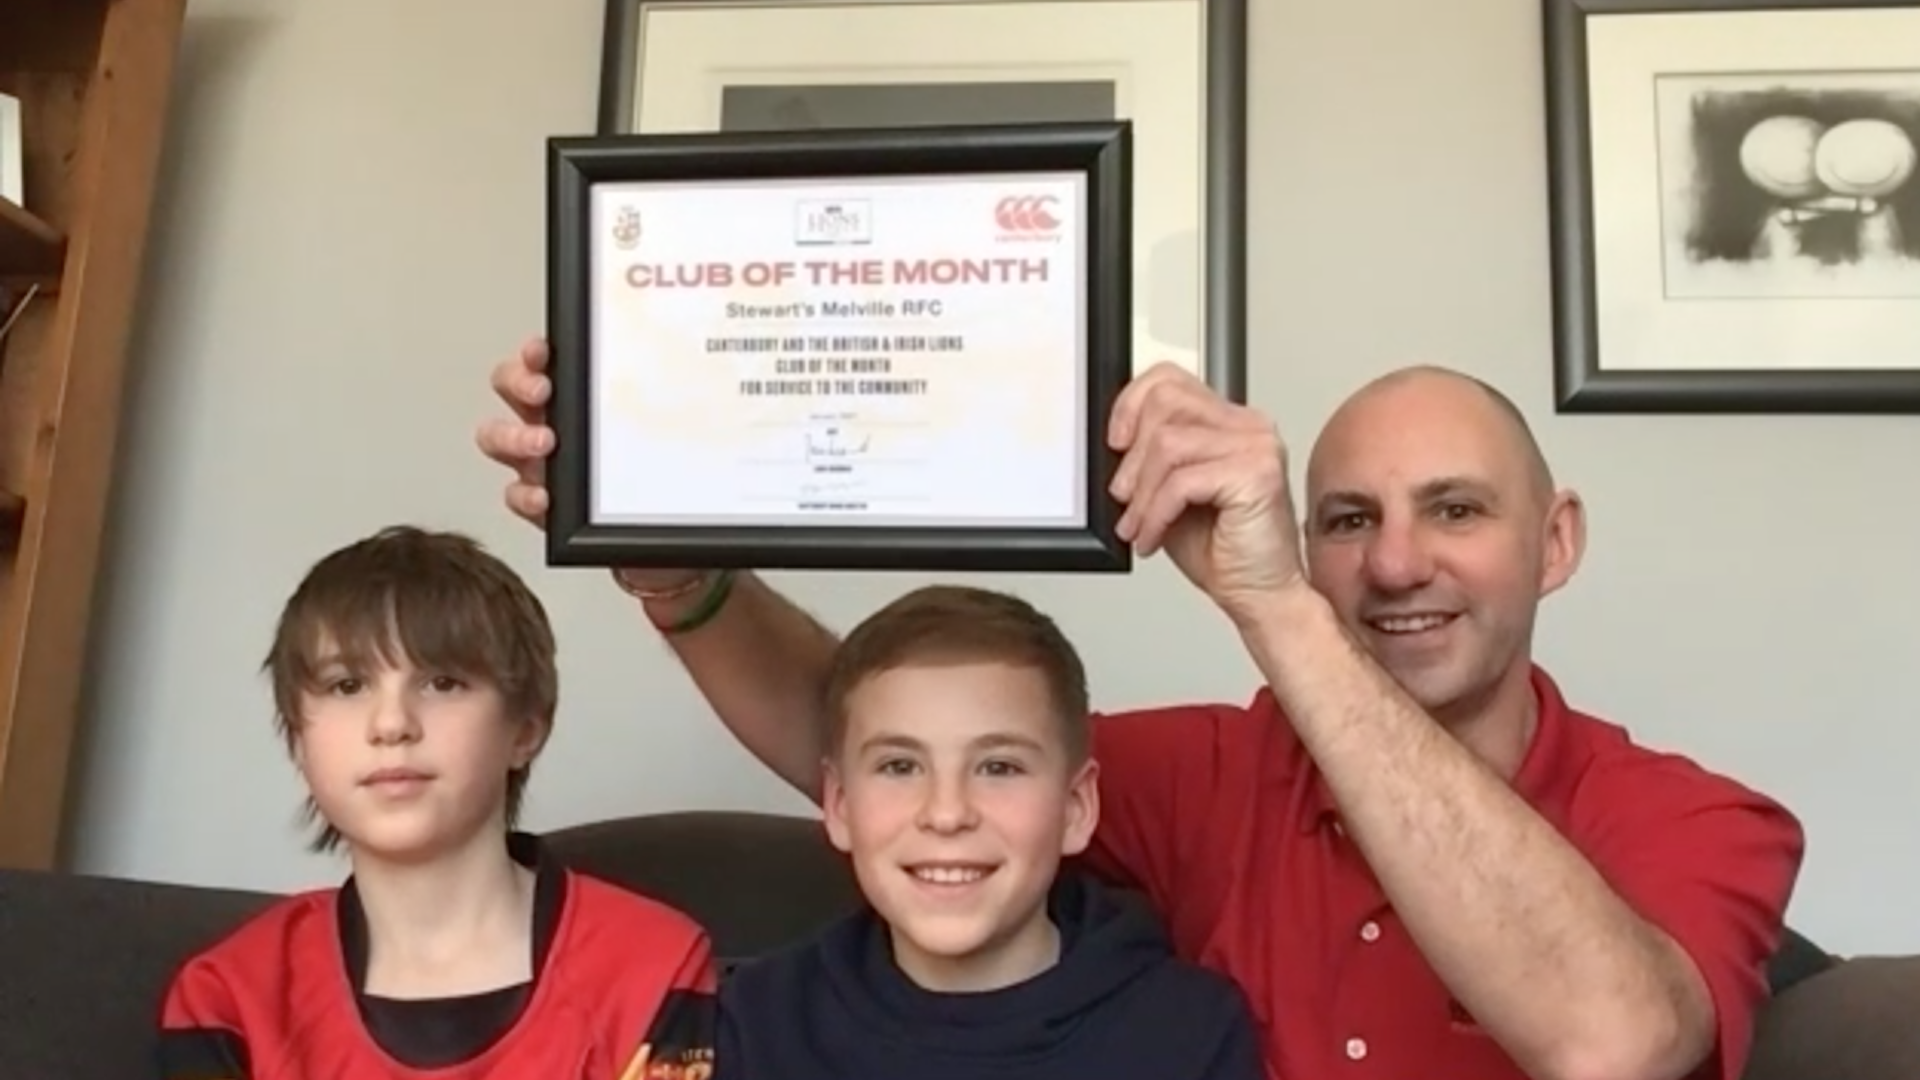 Club of the Month Stewart's Melville